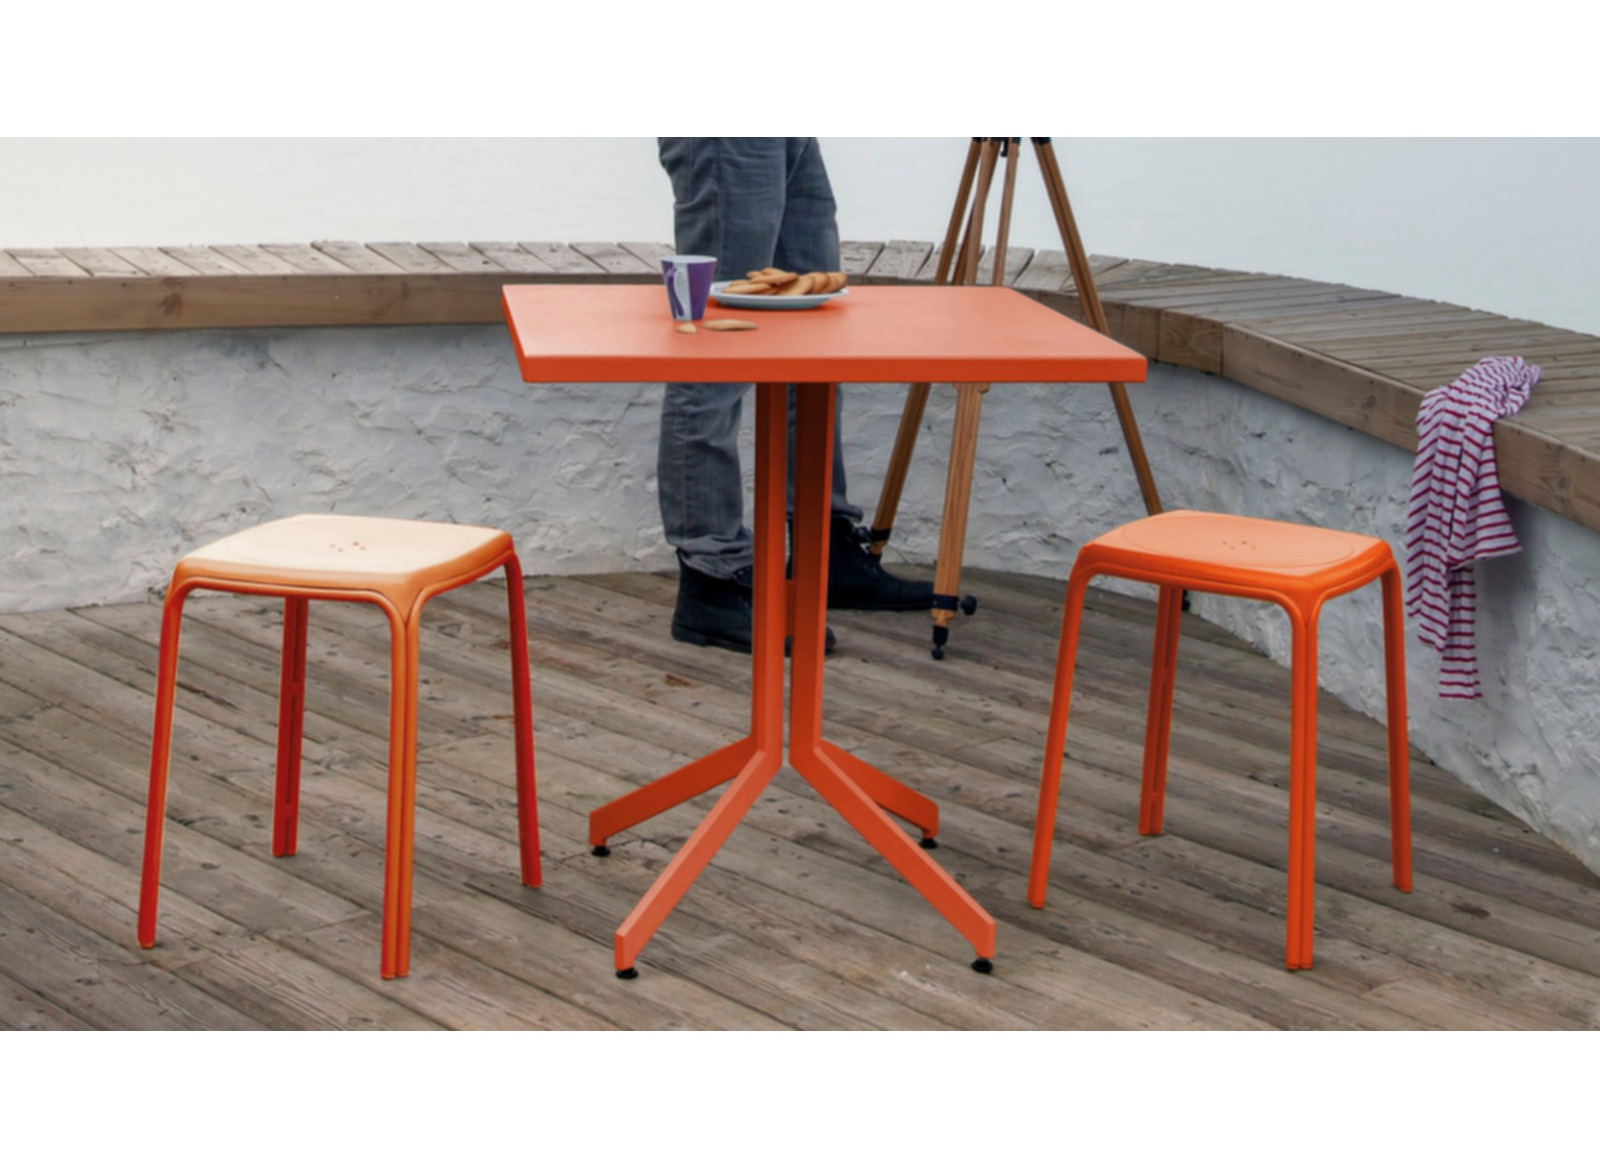 Mobilier De Jardin Jati Et Kebon Best Table De Jardin Urban Contemporary Awesome Interior